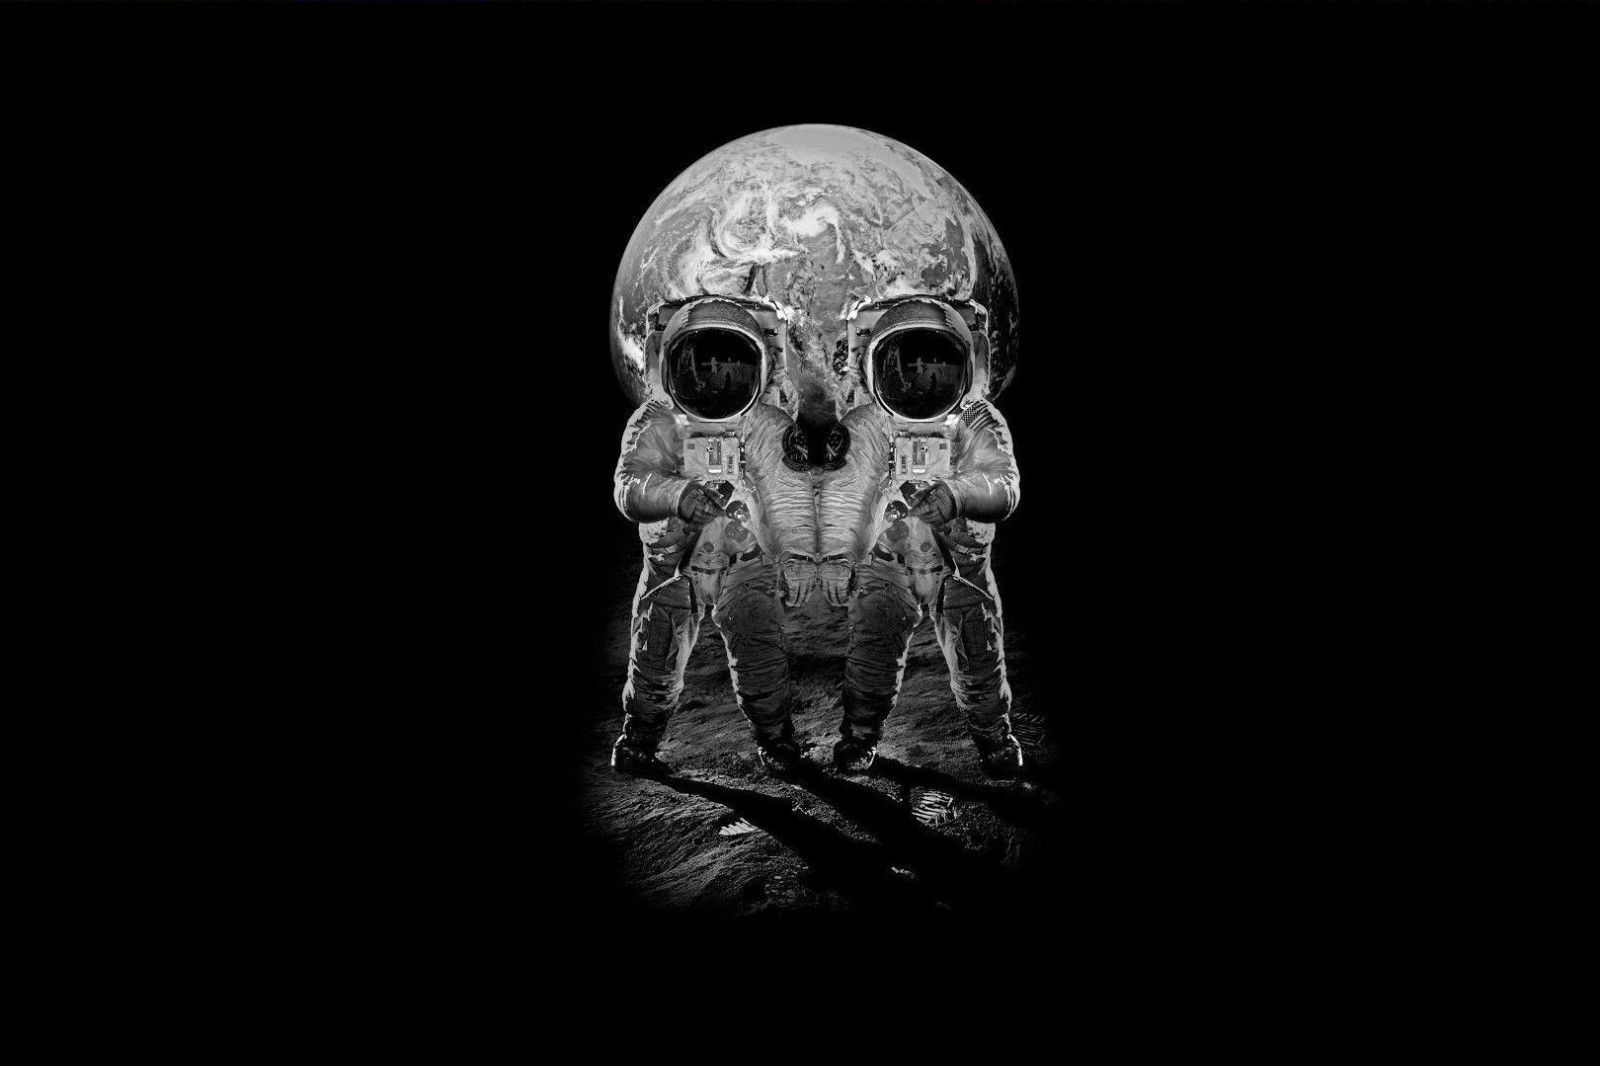 Gothic Optical Illusion Astronauts//Moon or Skull Framed Print Picture Poster